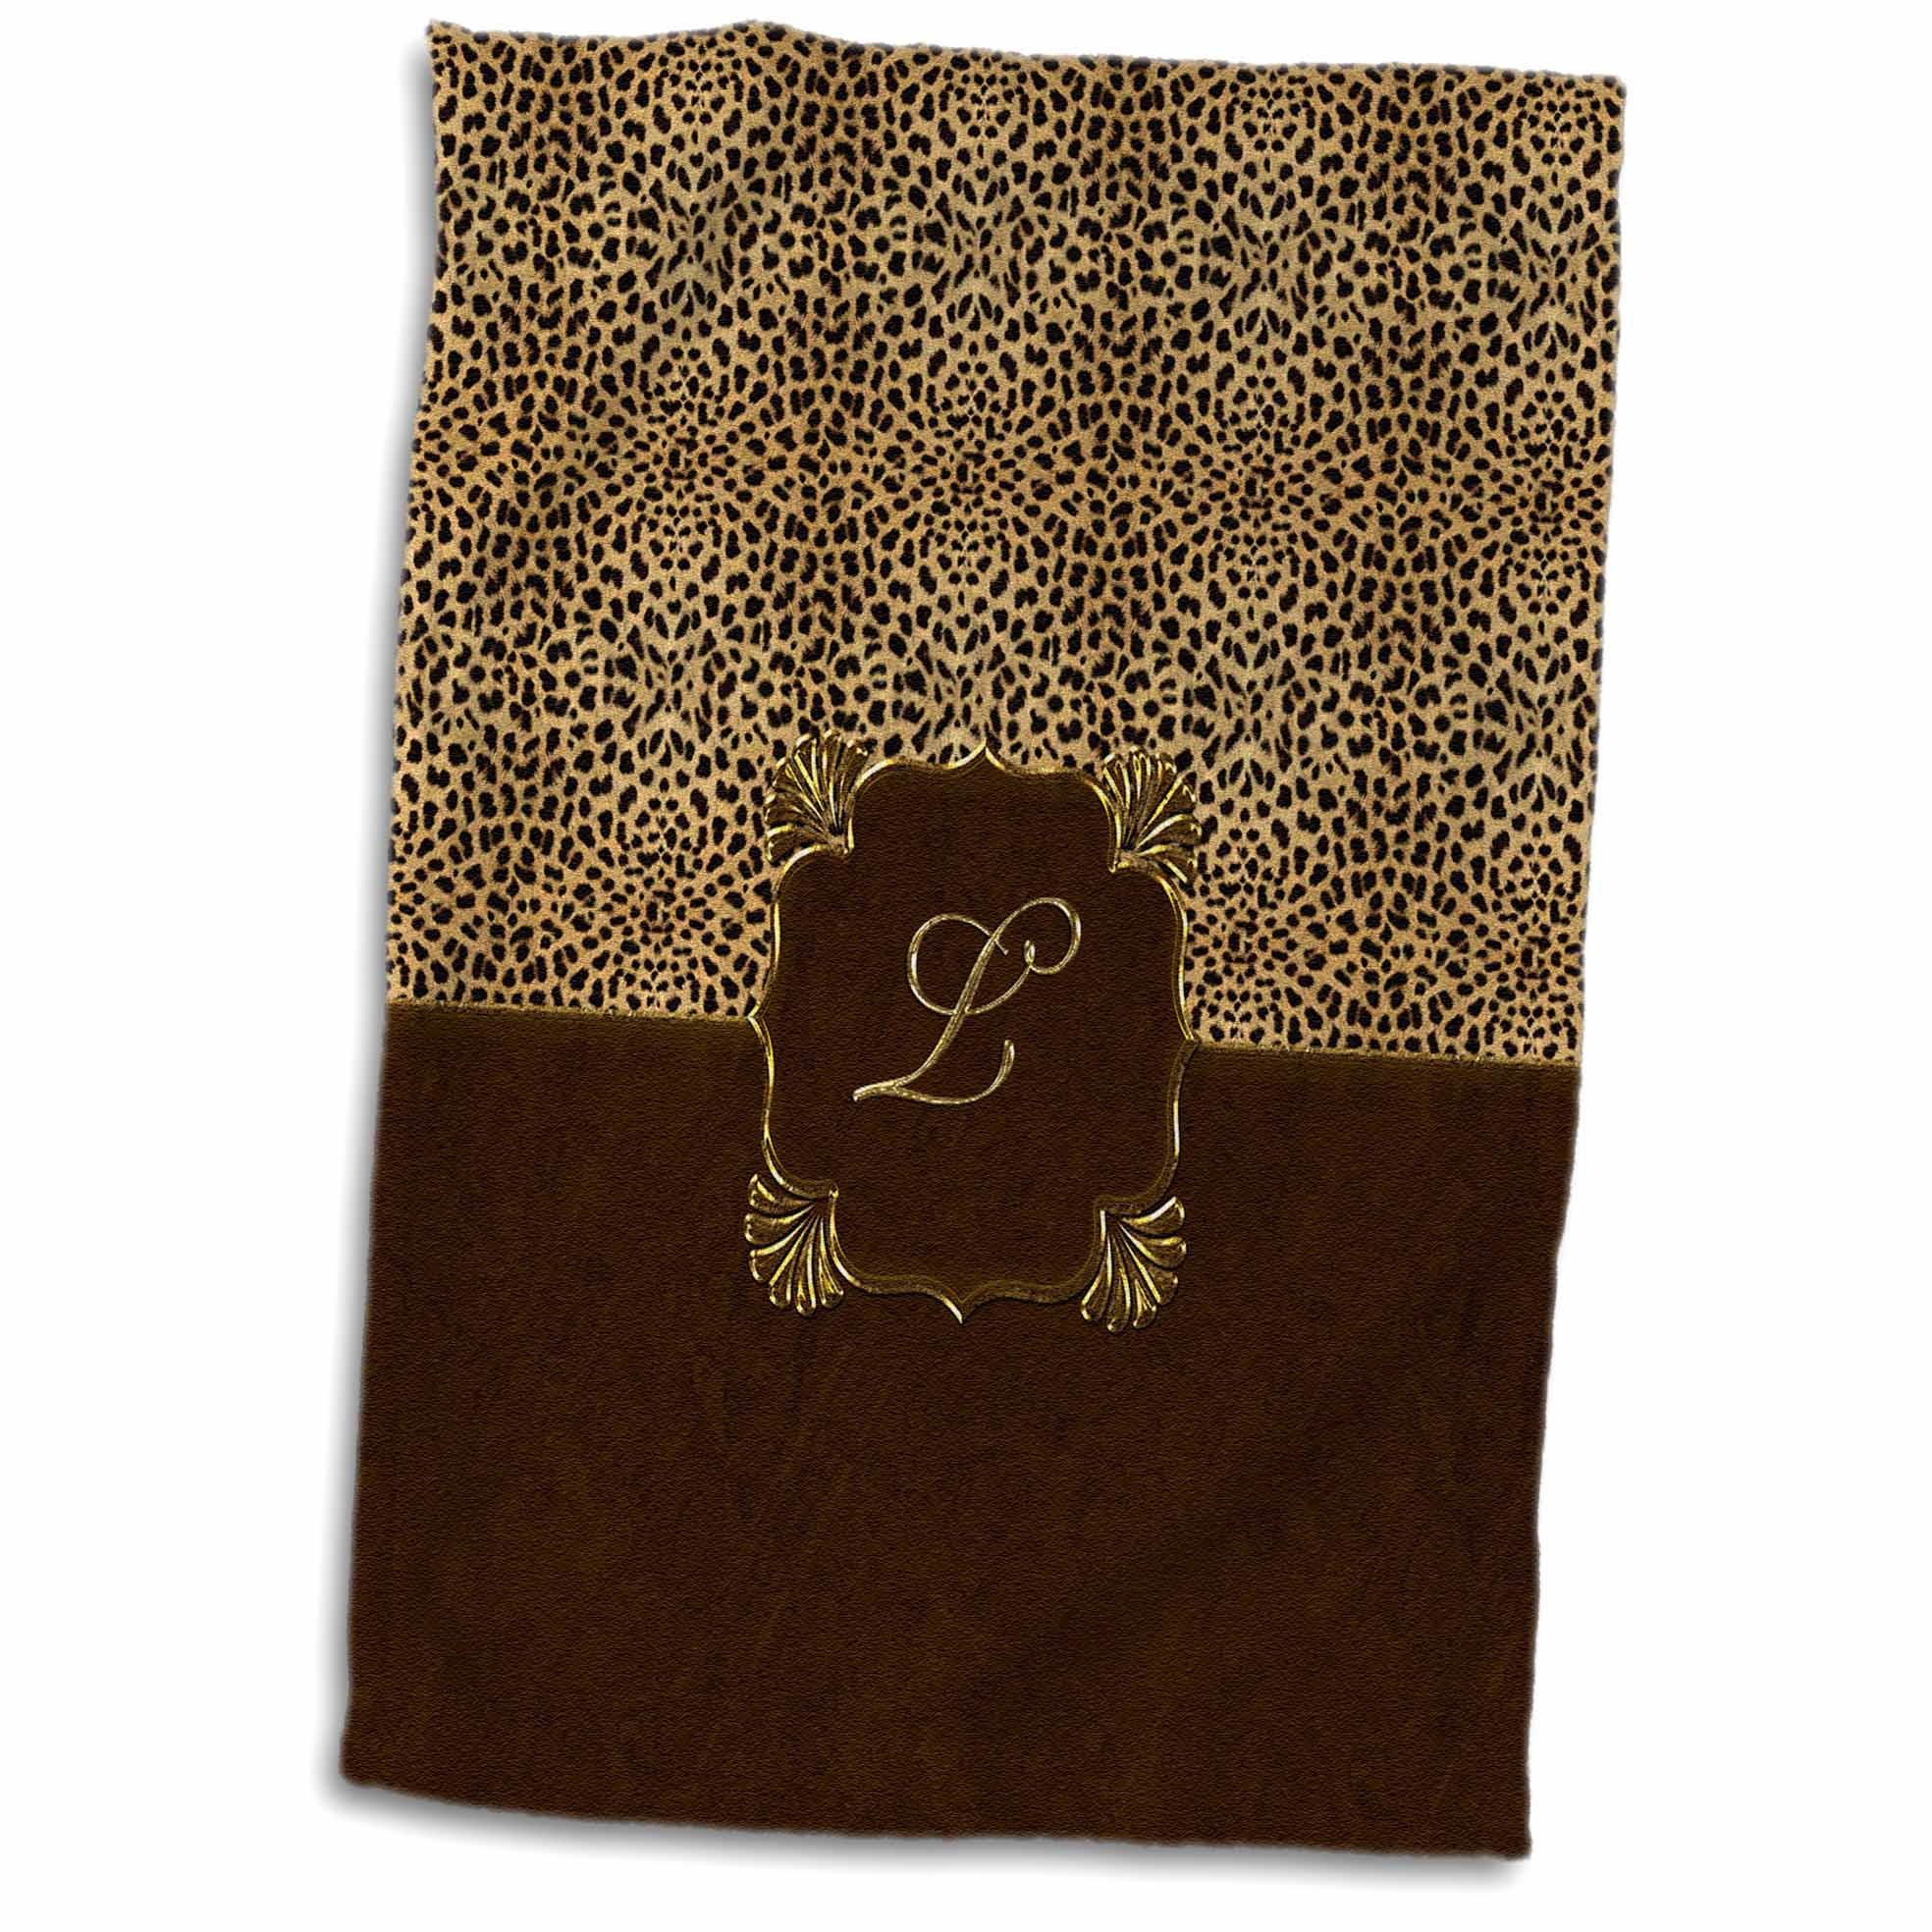 3dRose Elegant Animal Print in Warm Brown and Gold Monogram Letter L - Towel, 15 by 22-inch